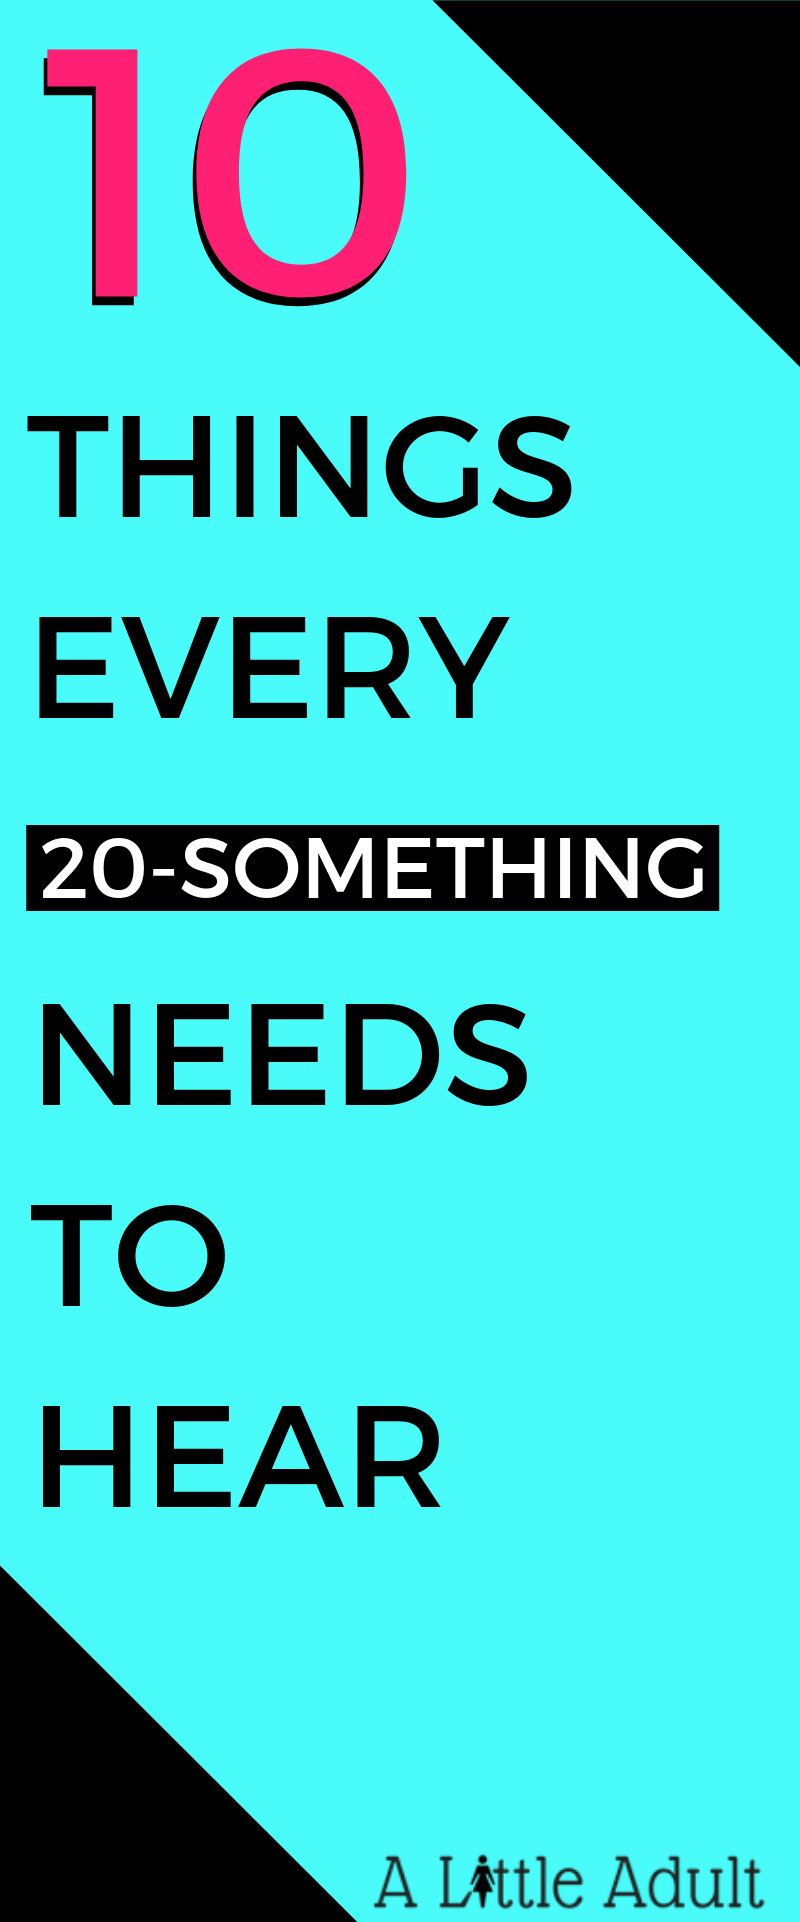 10 PIECES OF ADVICE FOR 2O-SOMETHINGS